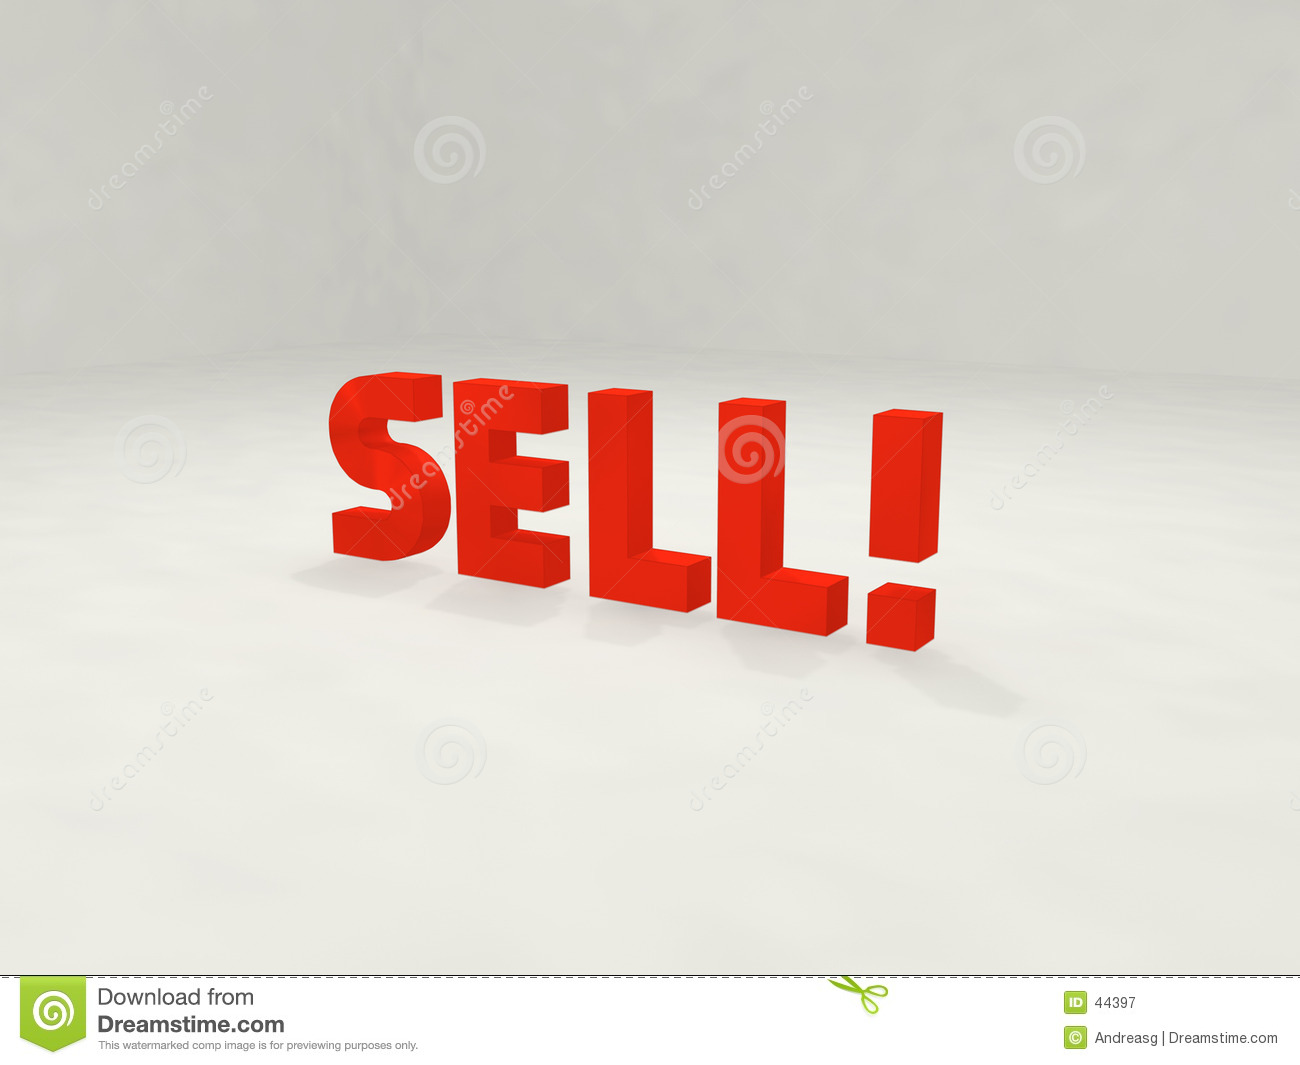 Sell and exclamation mark